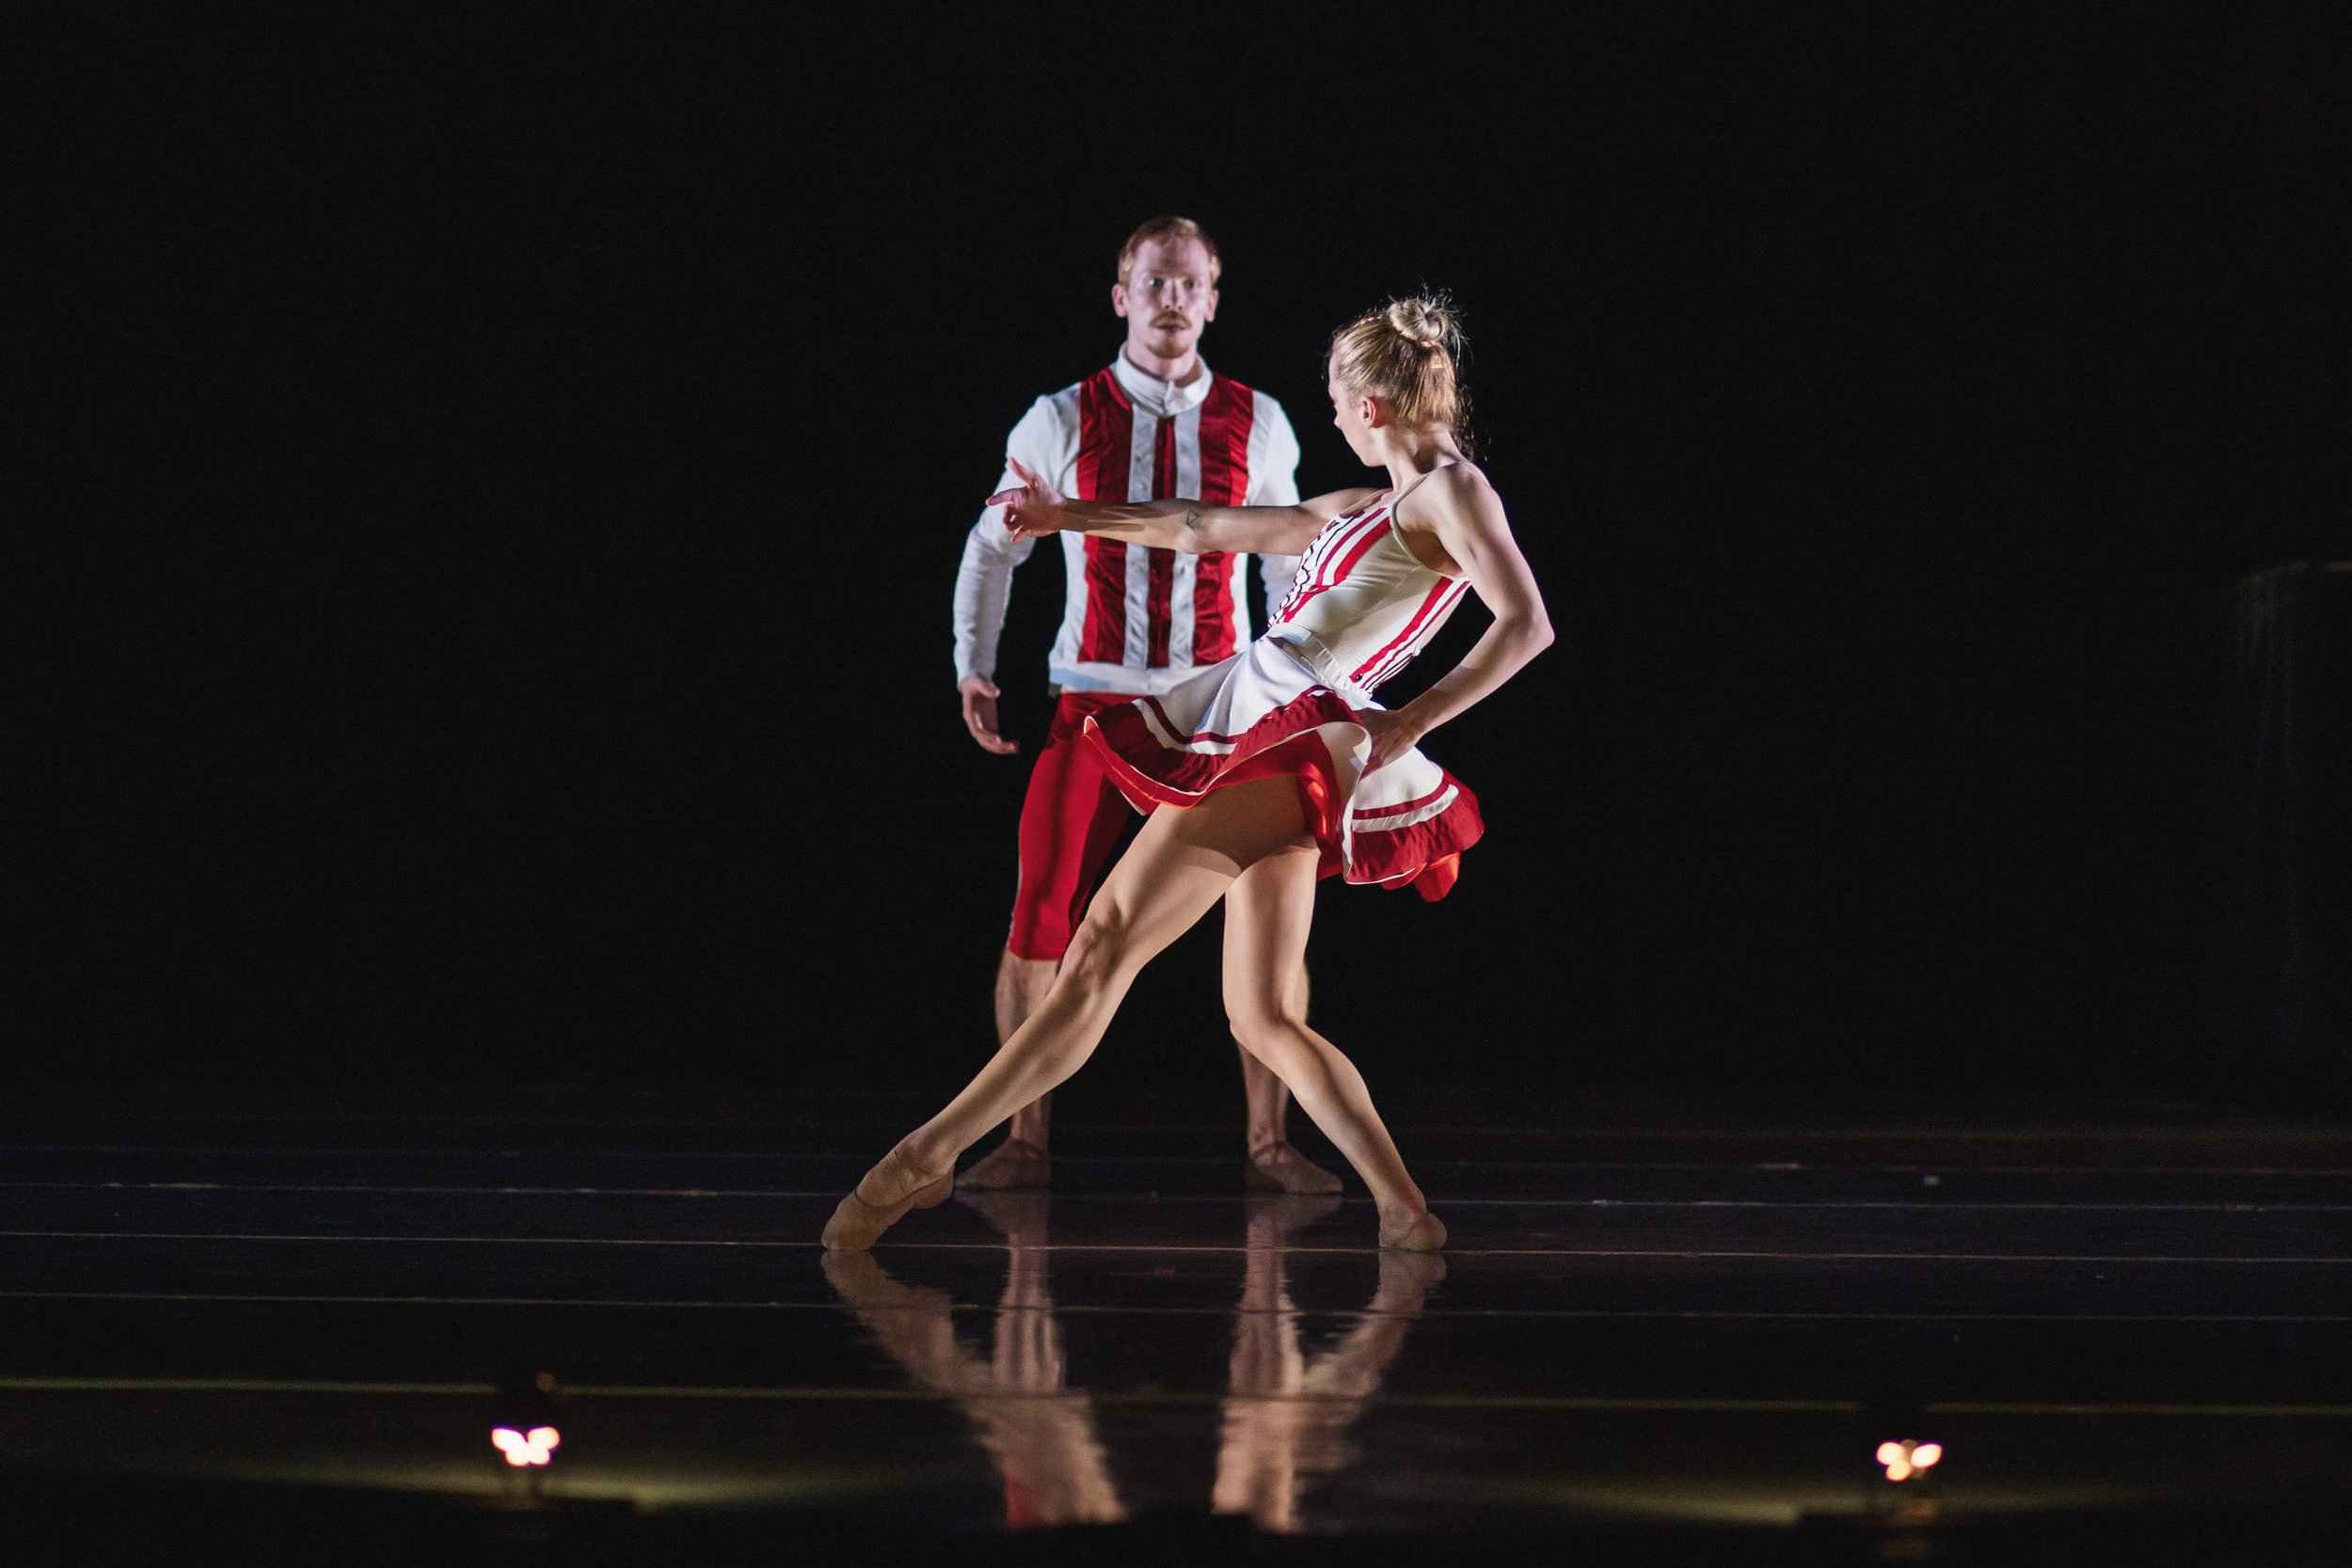 Wonderbound-dancers-Deanna-Lefton-and-Ben-Youngstone-in-Sarah-Tallman_s_Read-The-Signs_in_Cupid_s-Playground_with-the-Colorado-Symphony_photo-by-Amanda-Tipton_2019.jpg